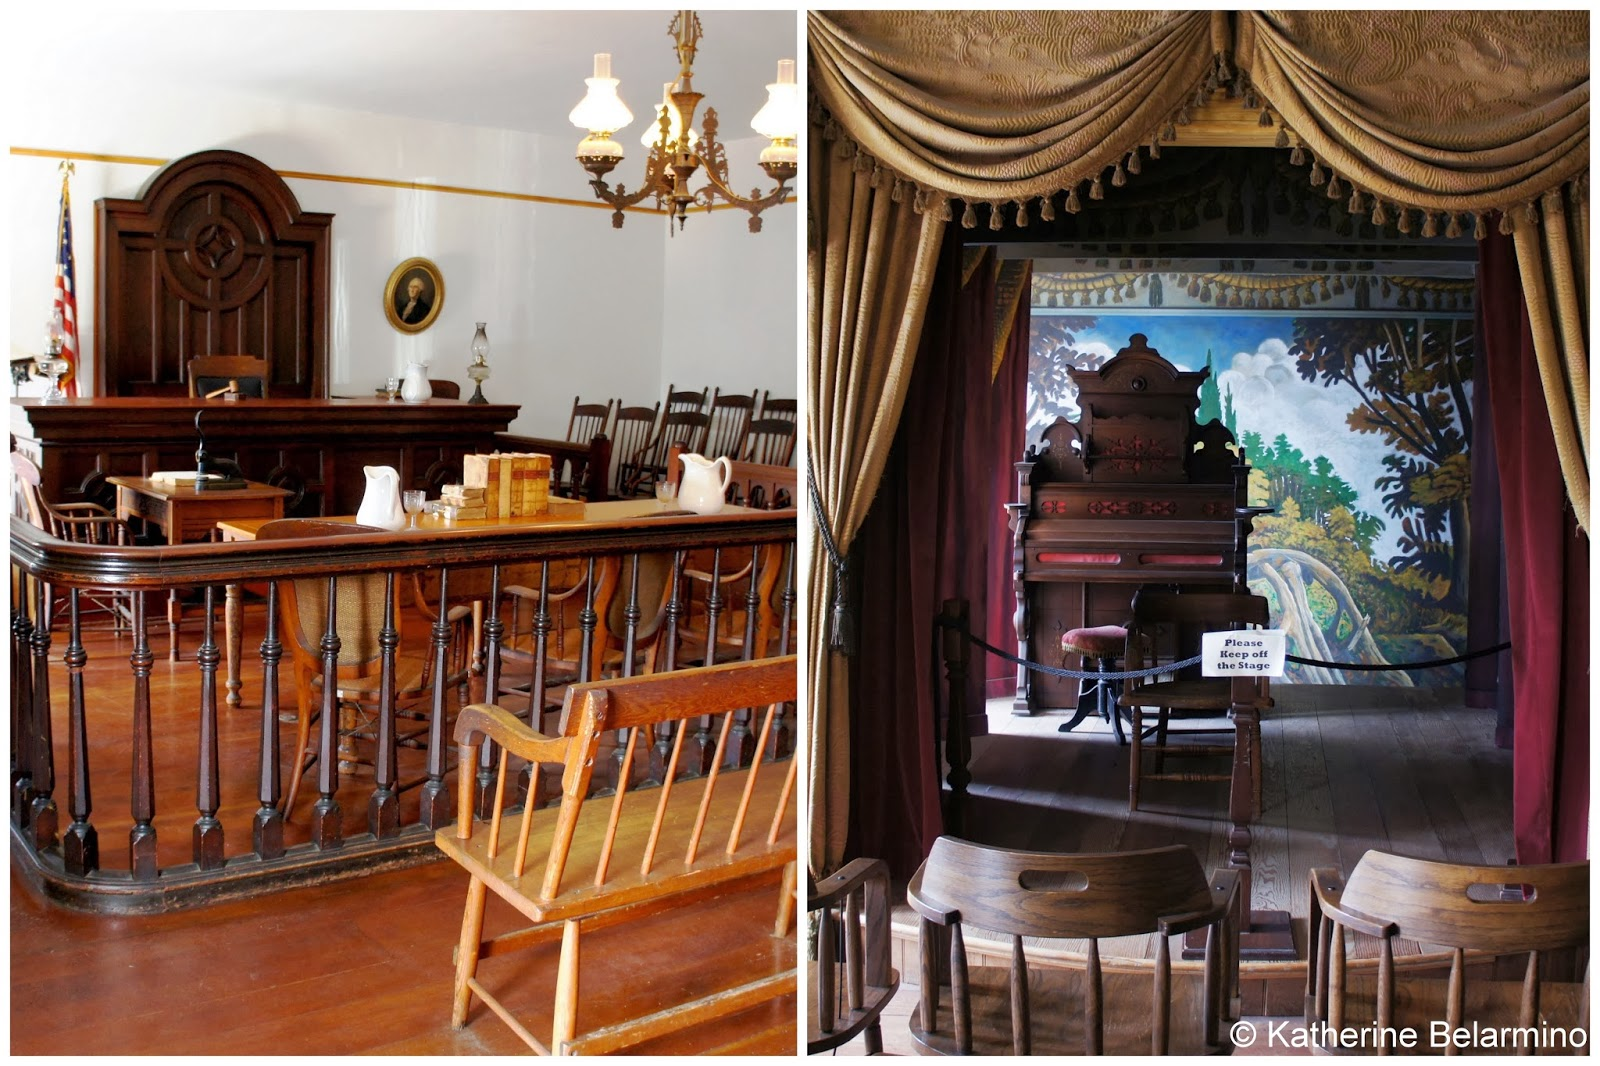 Vacation Isle San Diego, Learning San Diego's History Through House Museums | Travel the World